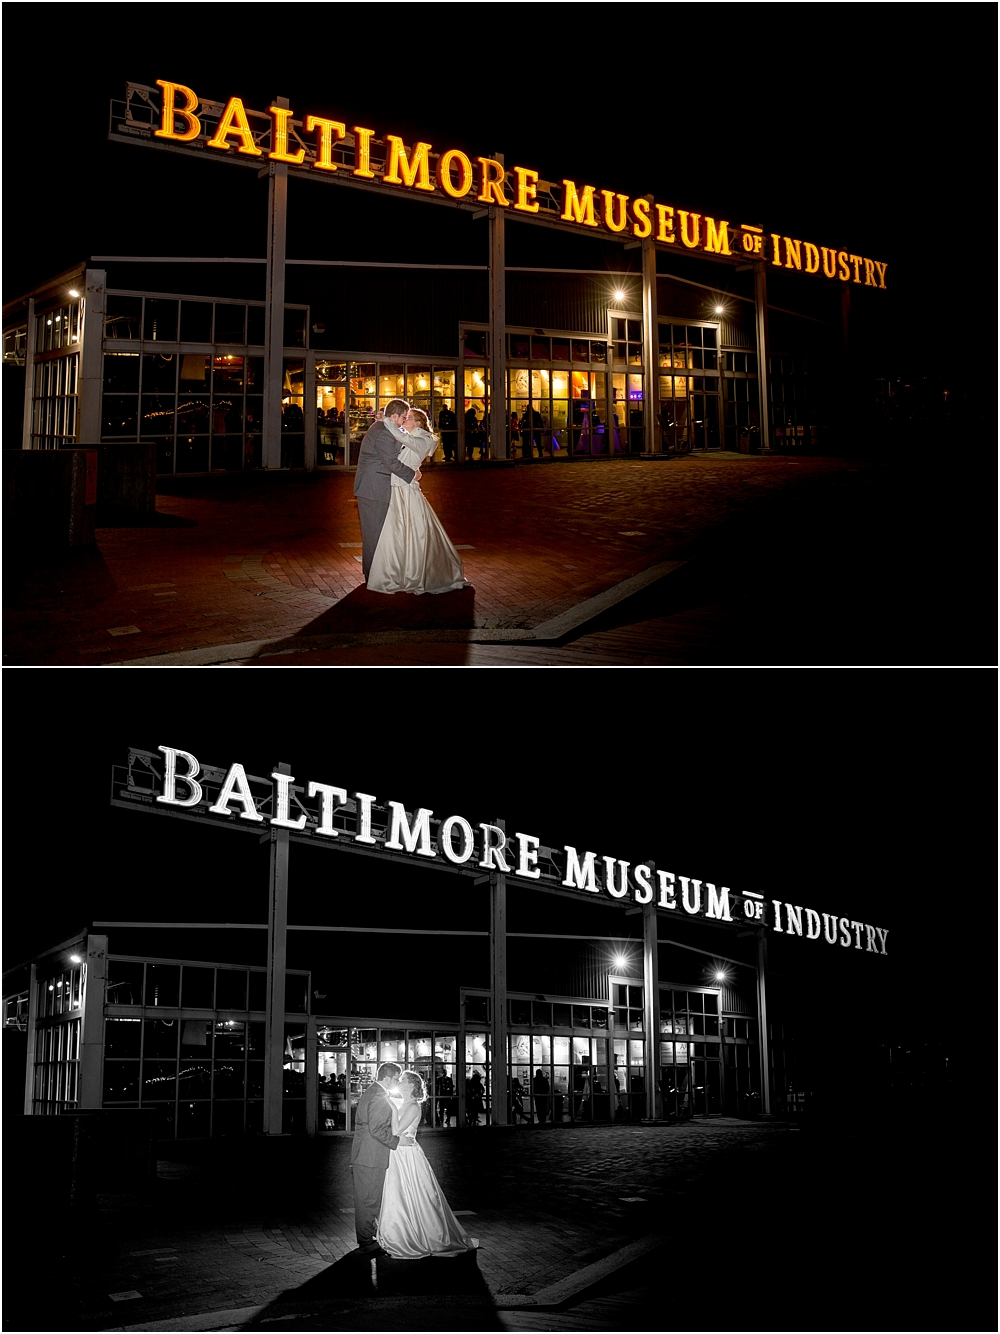 miriam michael baltimore museum of industry wedding living radiant photography_0100.jpg